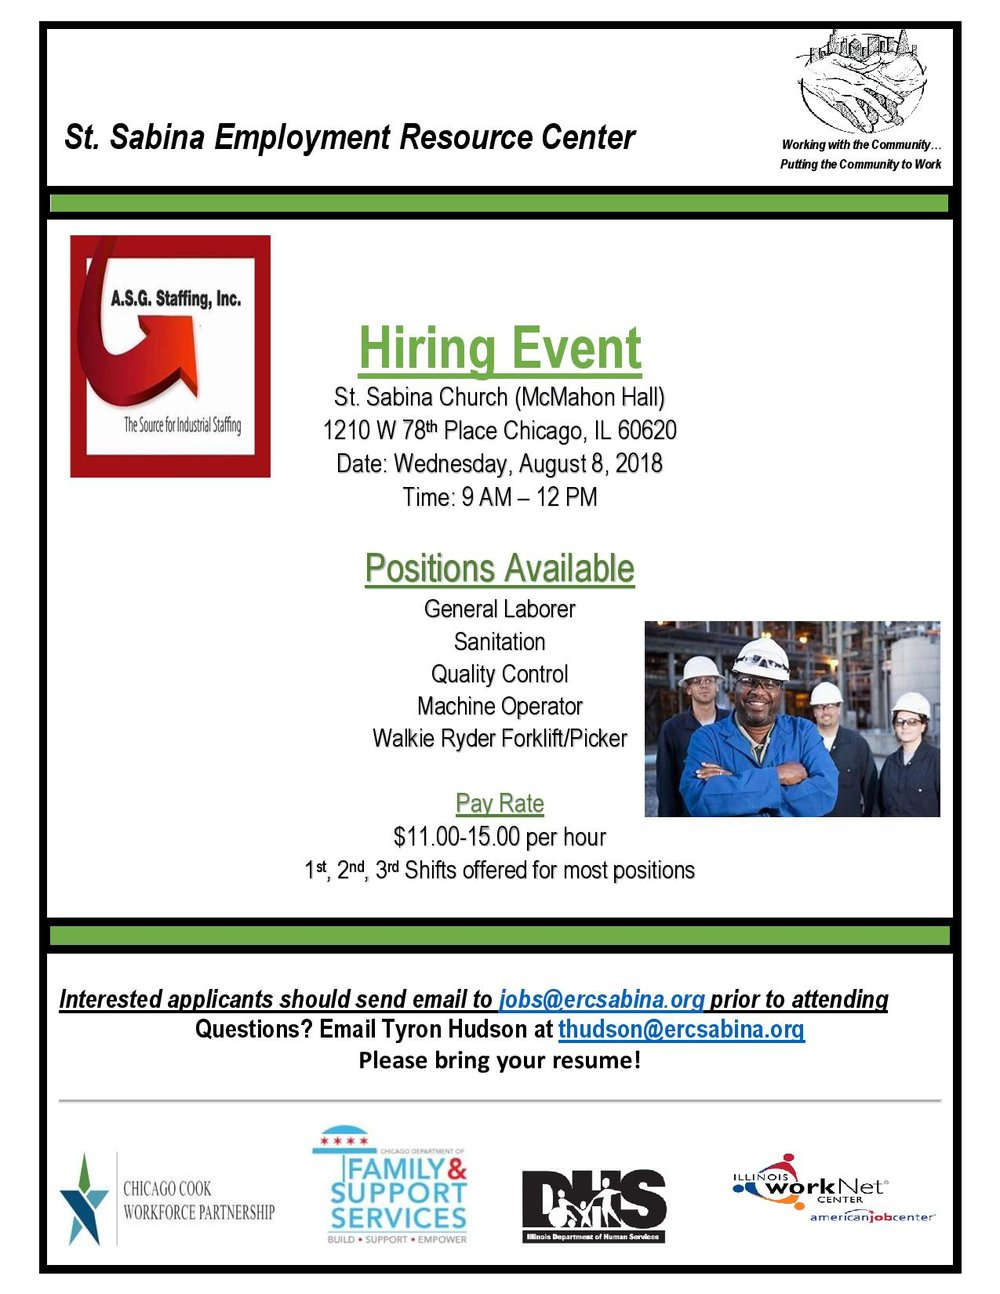 asg hiring event-page-001.jpg